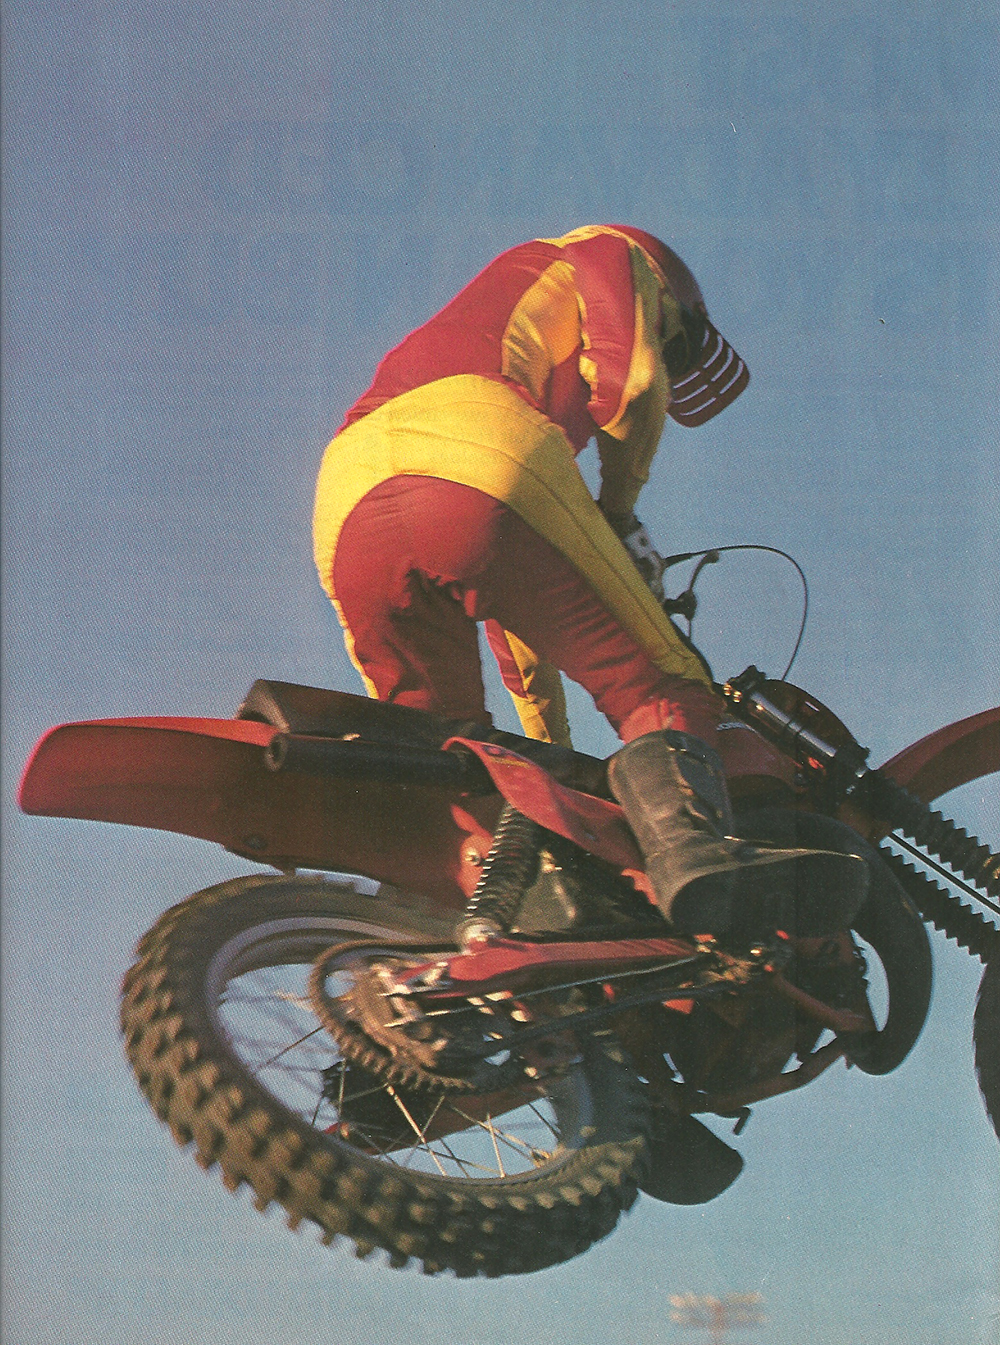 1979 Honda CR125R road test 01.jpg